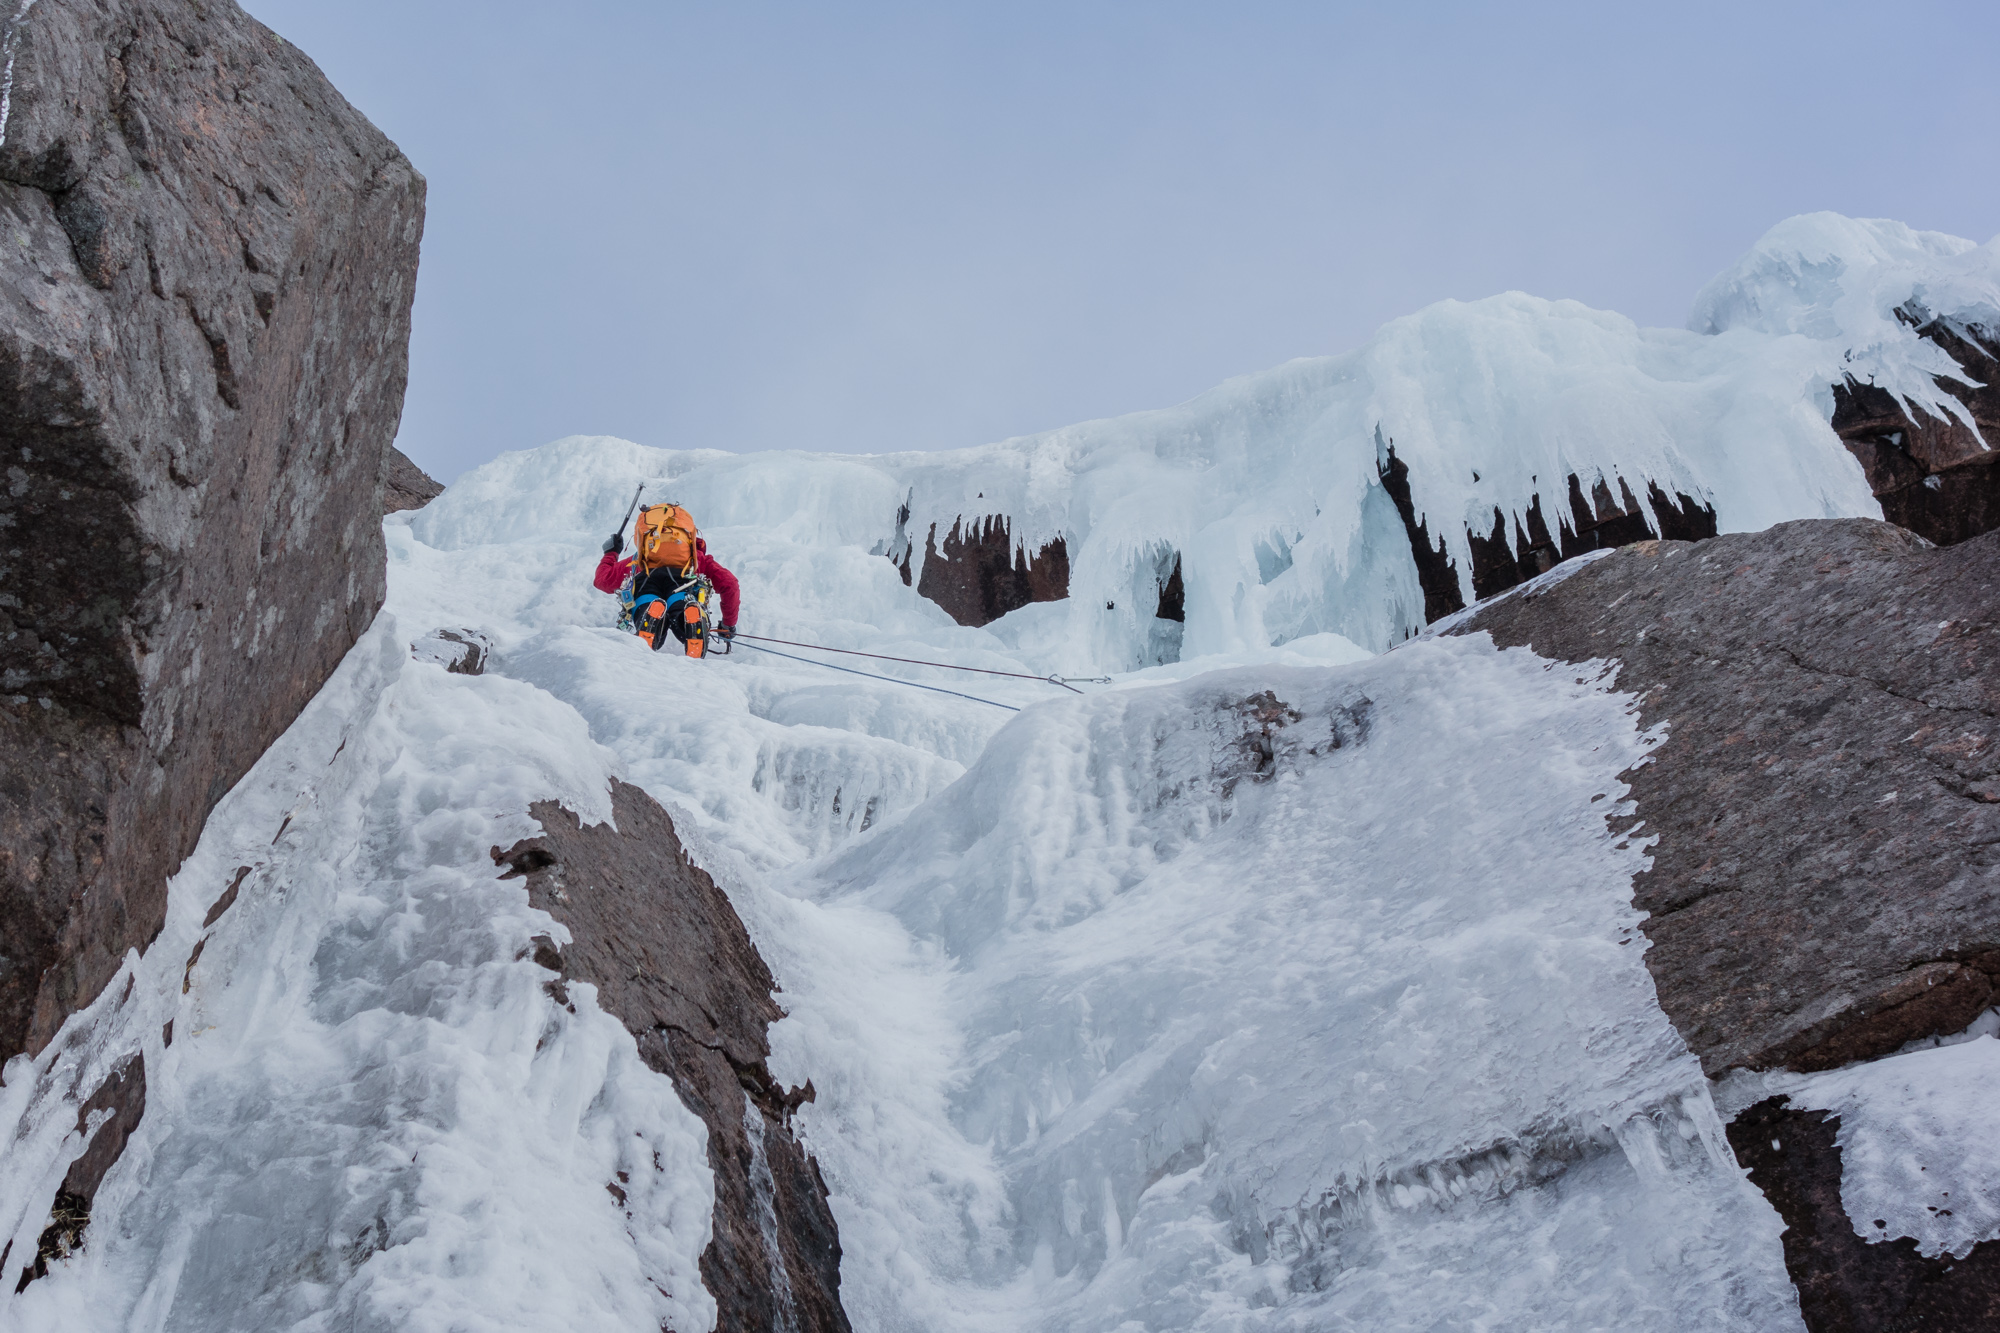 Andy approaching the final steepening after a rising traverse on slightly worrying ice. Photo credit: Joe Dobson